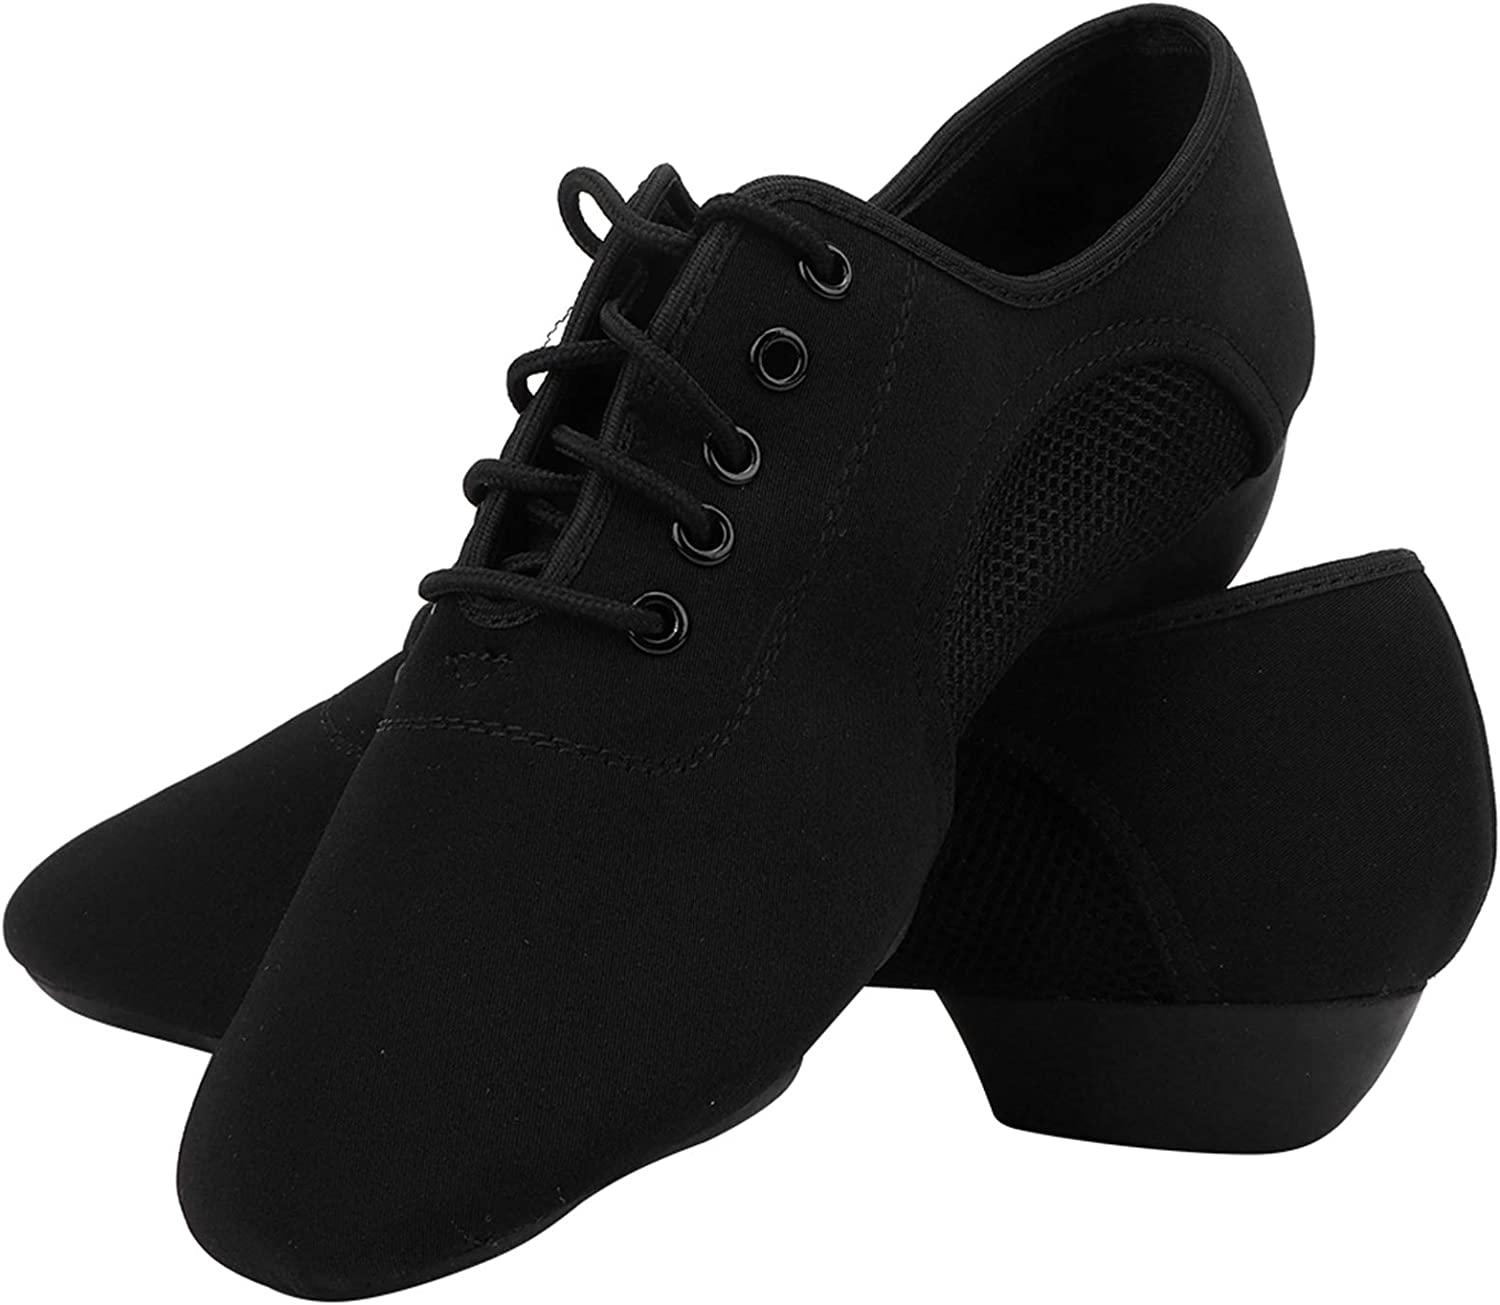 SALUTUY Latin Shoes Non Defrmation Washington Mall f Direct sale of manufacturer Comfortable Ballroom